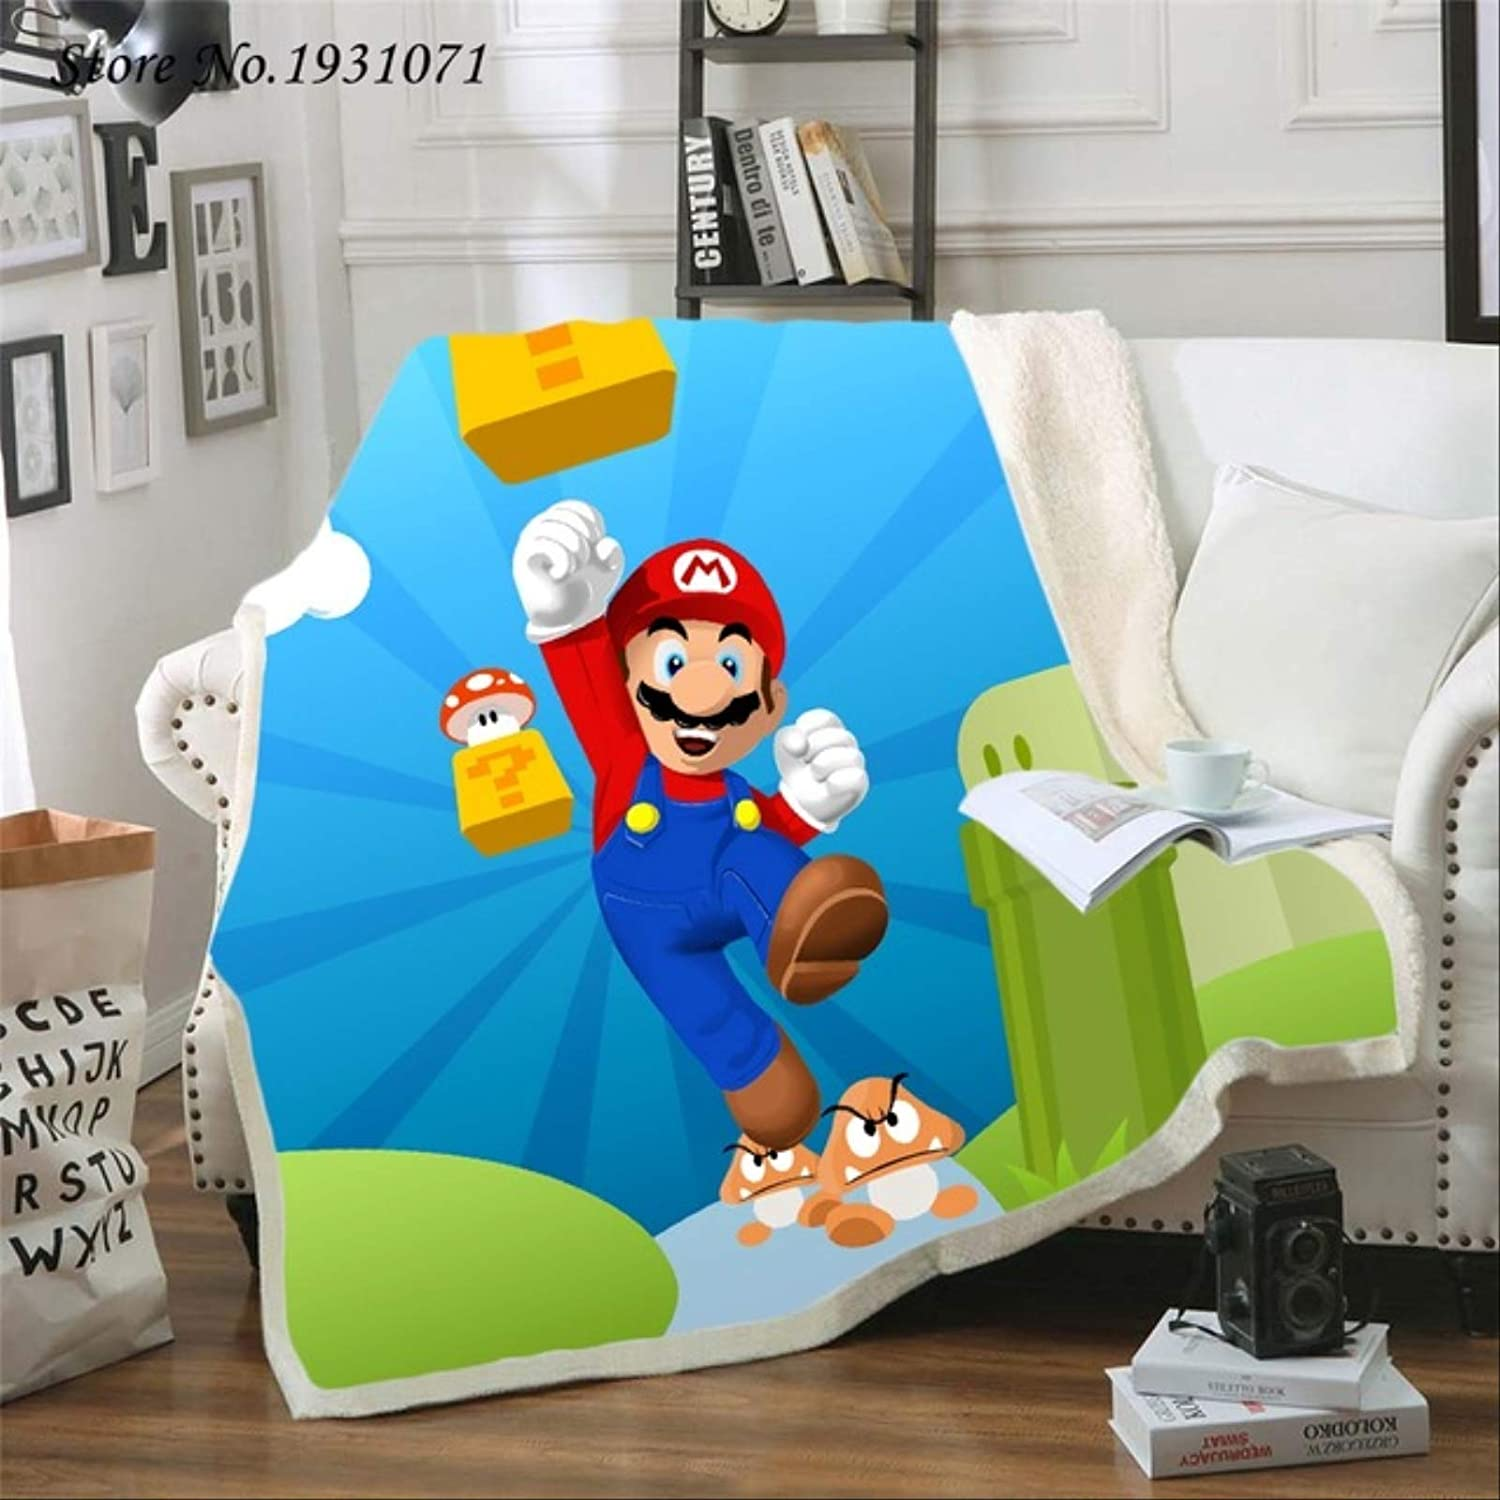 Ranking TOP8 NC56 New Super Mario 3D Sale item Printed Beds for Fleece Blanket Qu Thick